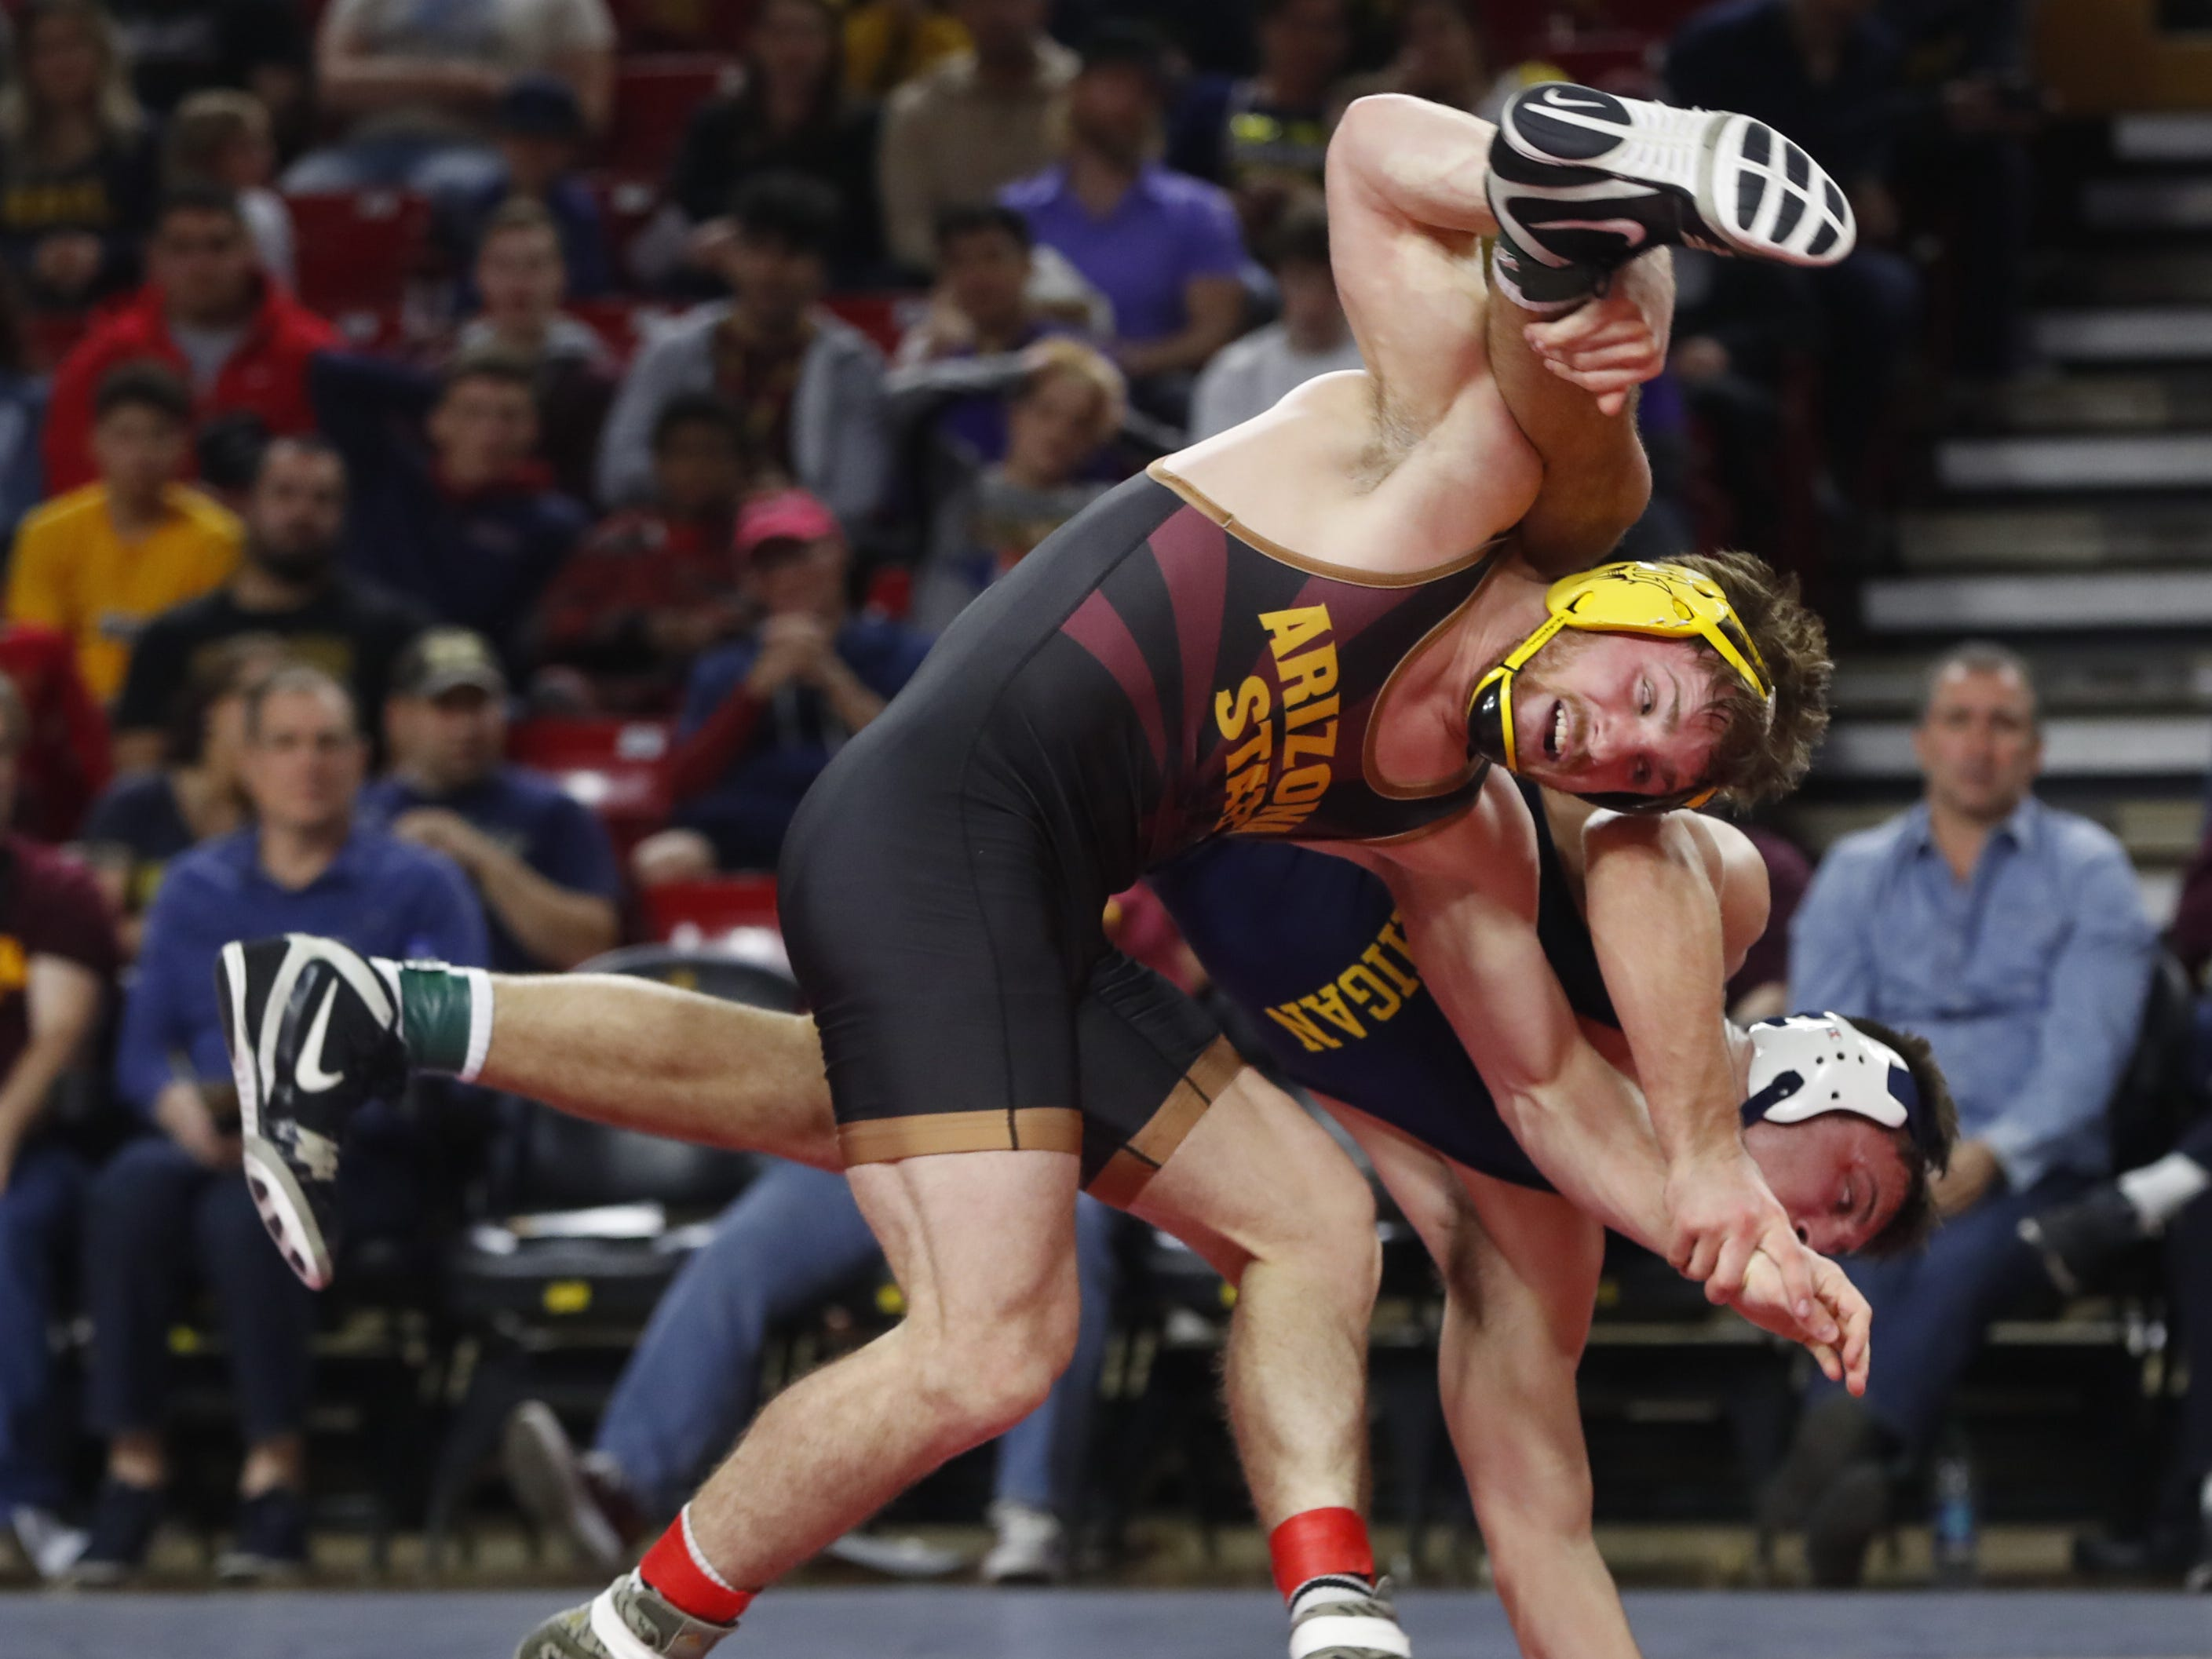 ASU's Jacen Peterson (in black) wrestles Michigan's Reece Hughes during a 184 lbs match at Wells Fargo Arena in Tempe, Ariz. on January 5, 2019.